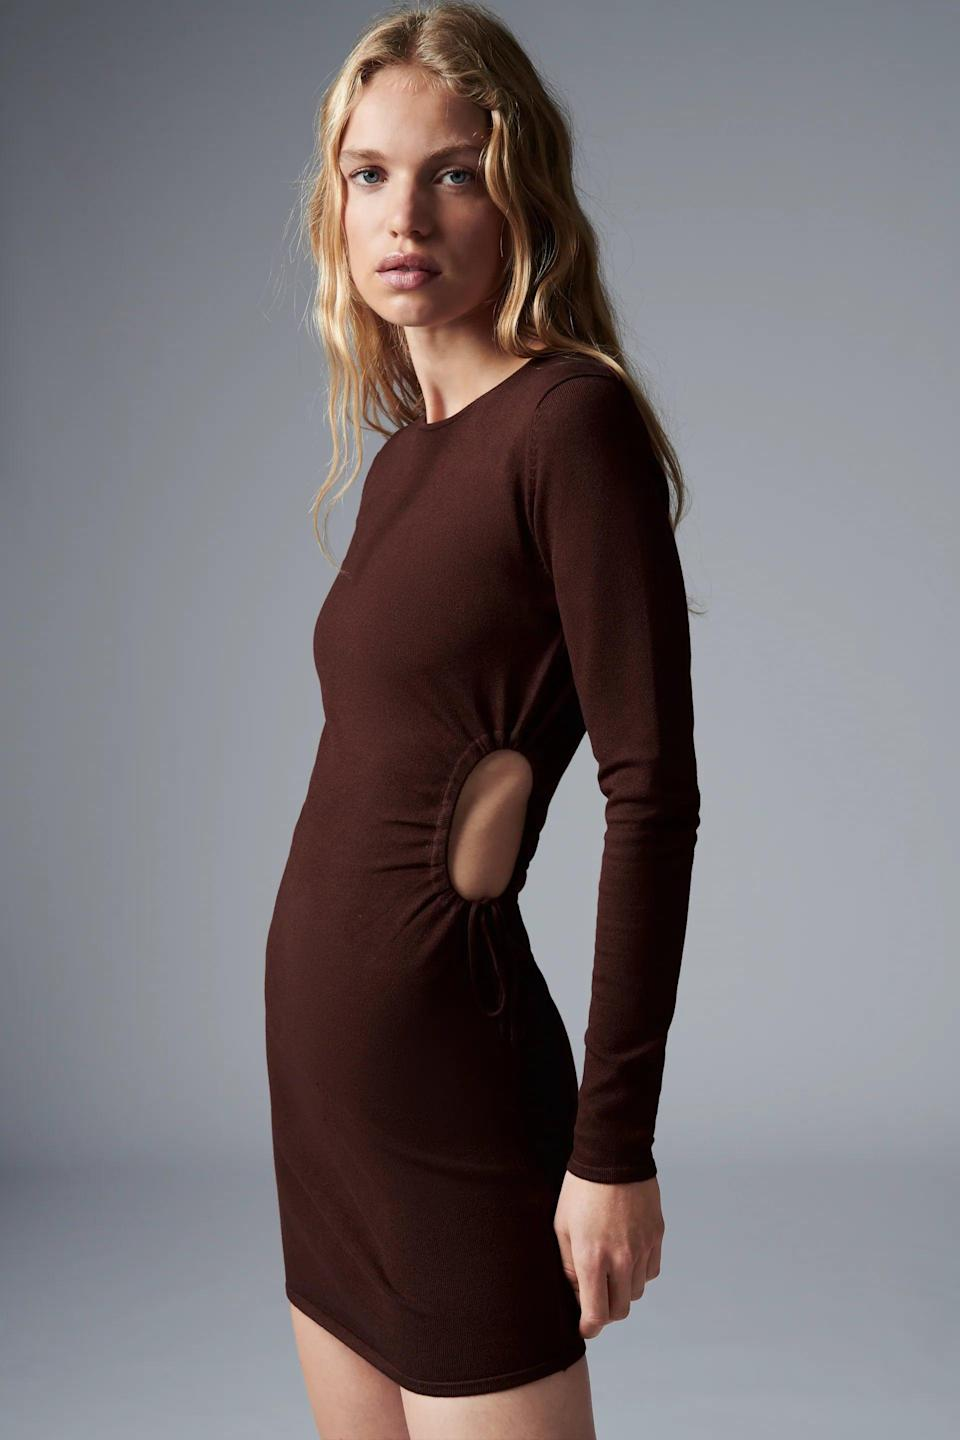 <p>This <span>Zara Cut Out Knit Dress</span> ($40) has the cutest side cutouts. We're also obsessed with the chocolate brown color.</p>